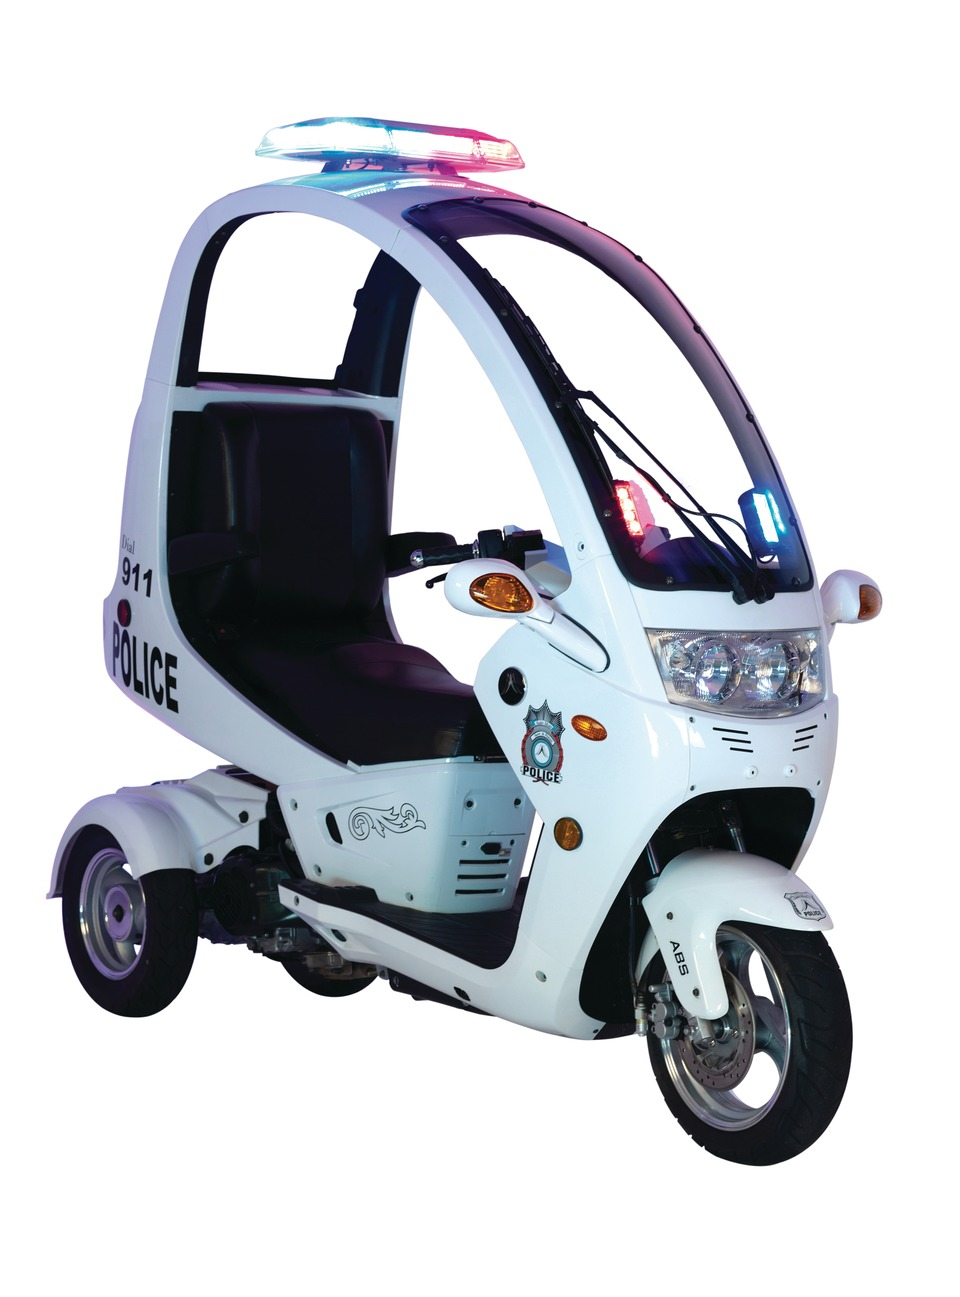 The Auto Moto Police Interceptor Scooter In Vehicles